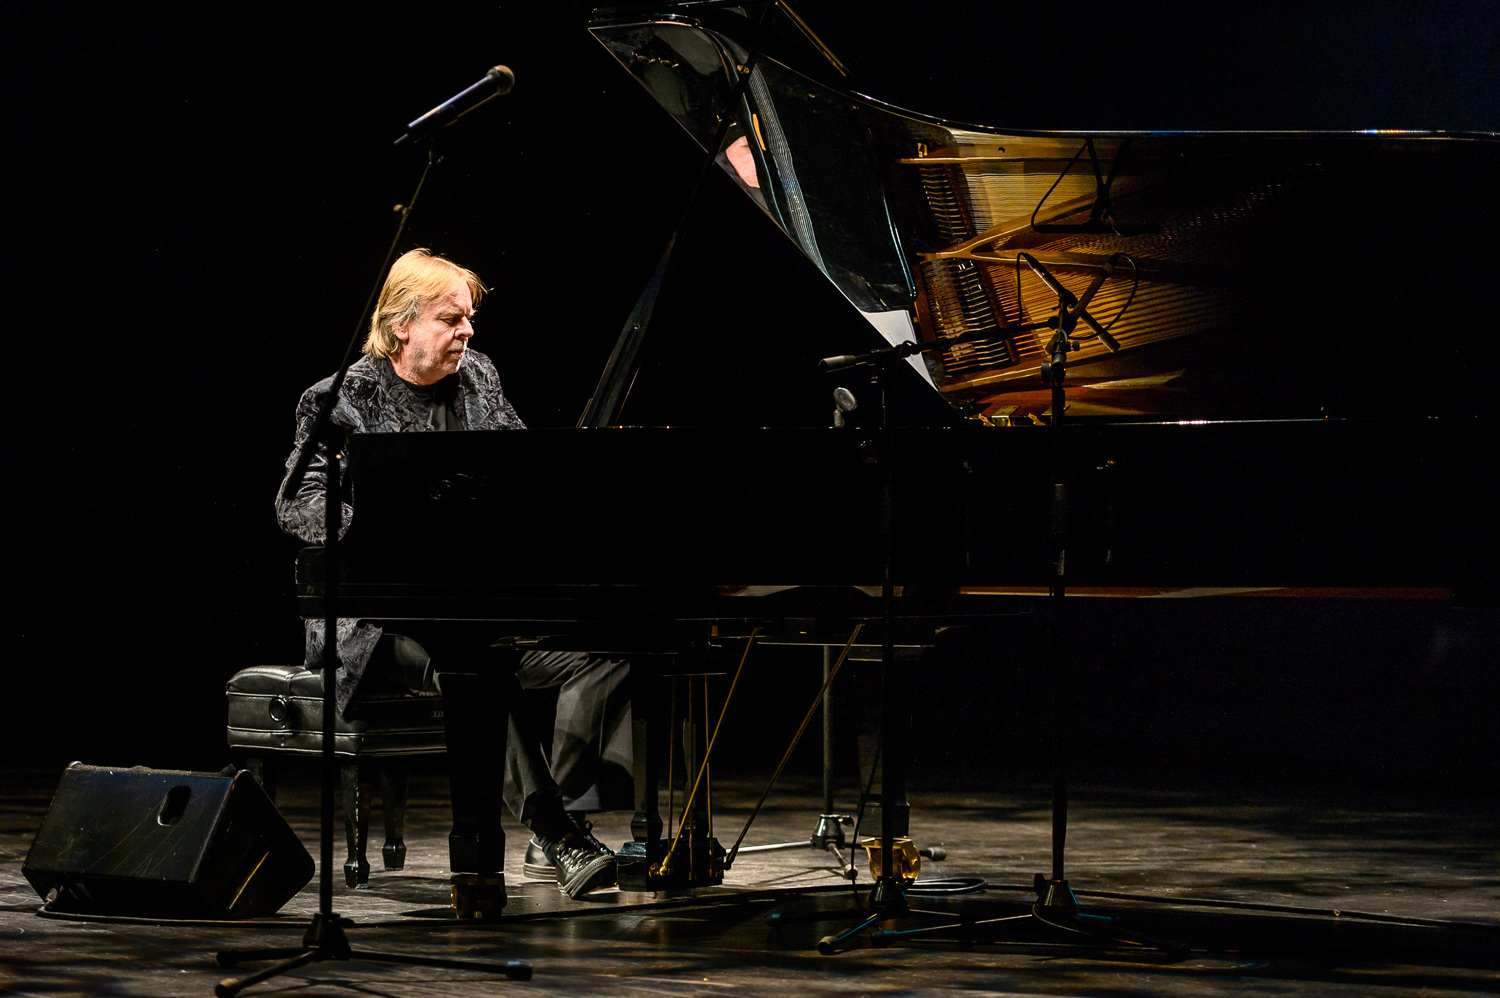 Rick Wakeman_October 07, 2012_007.jpg